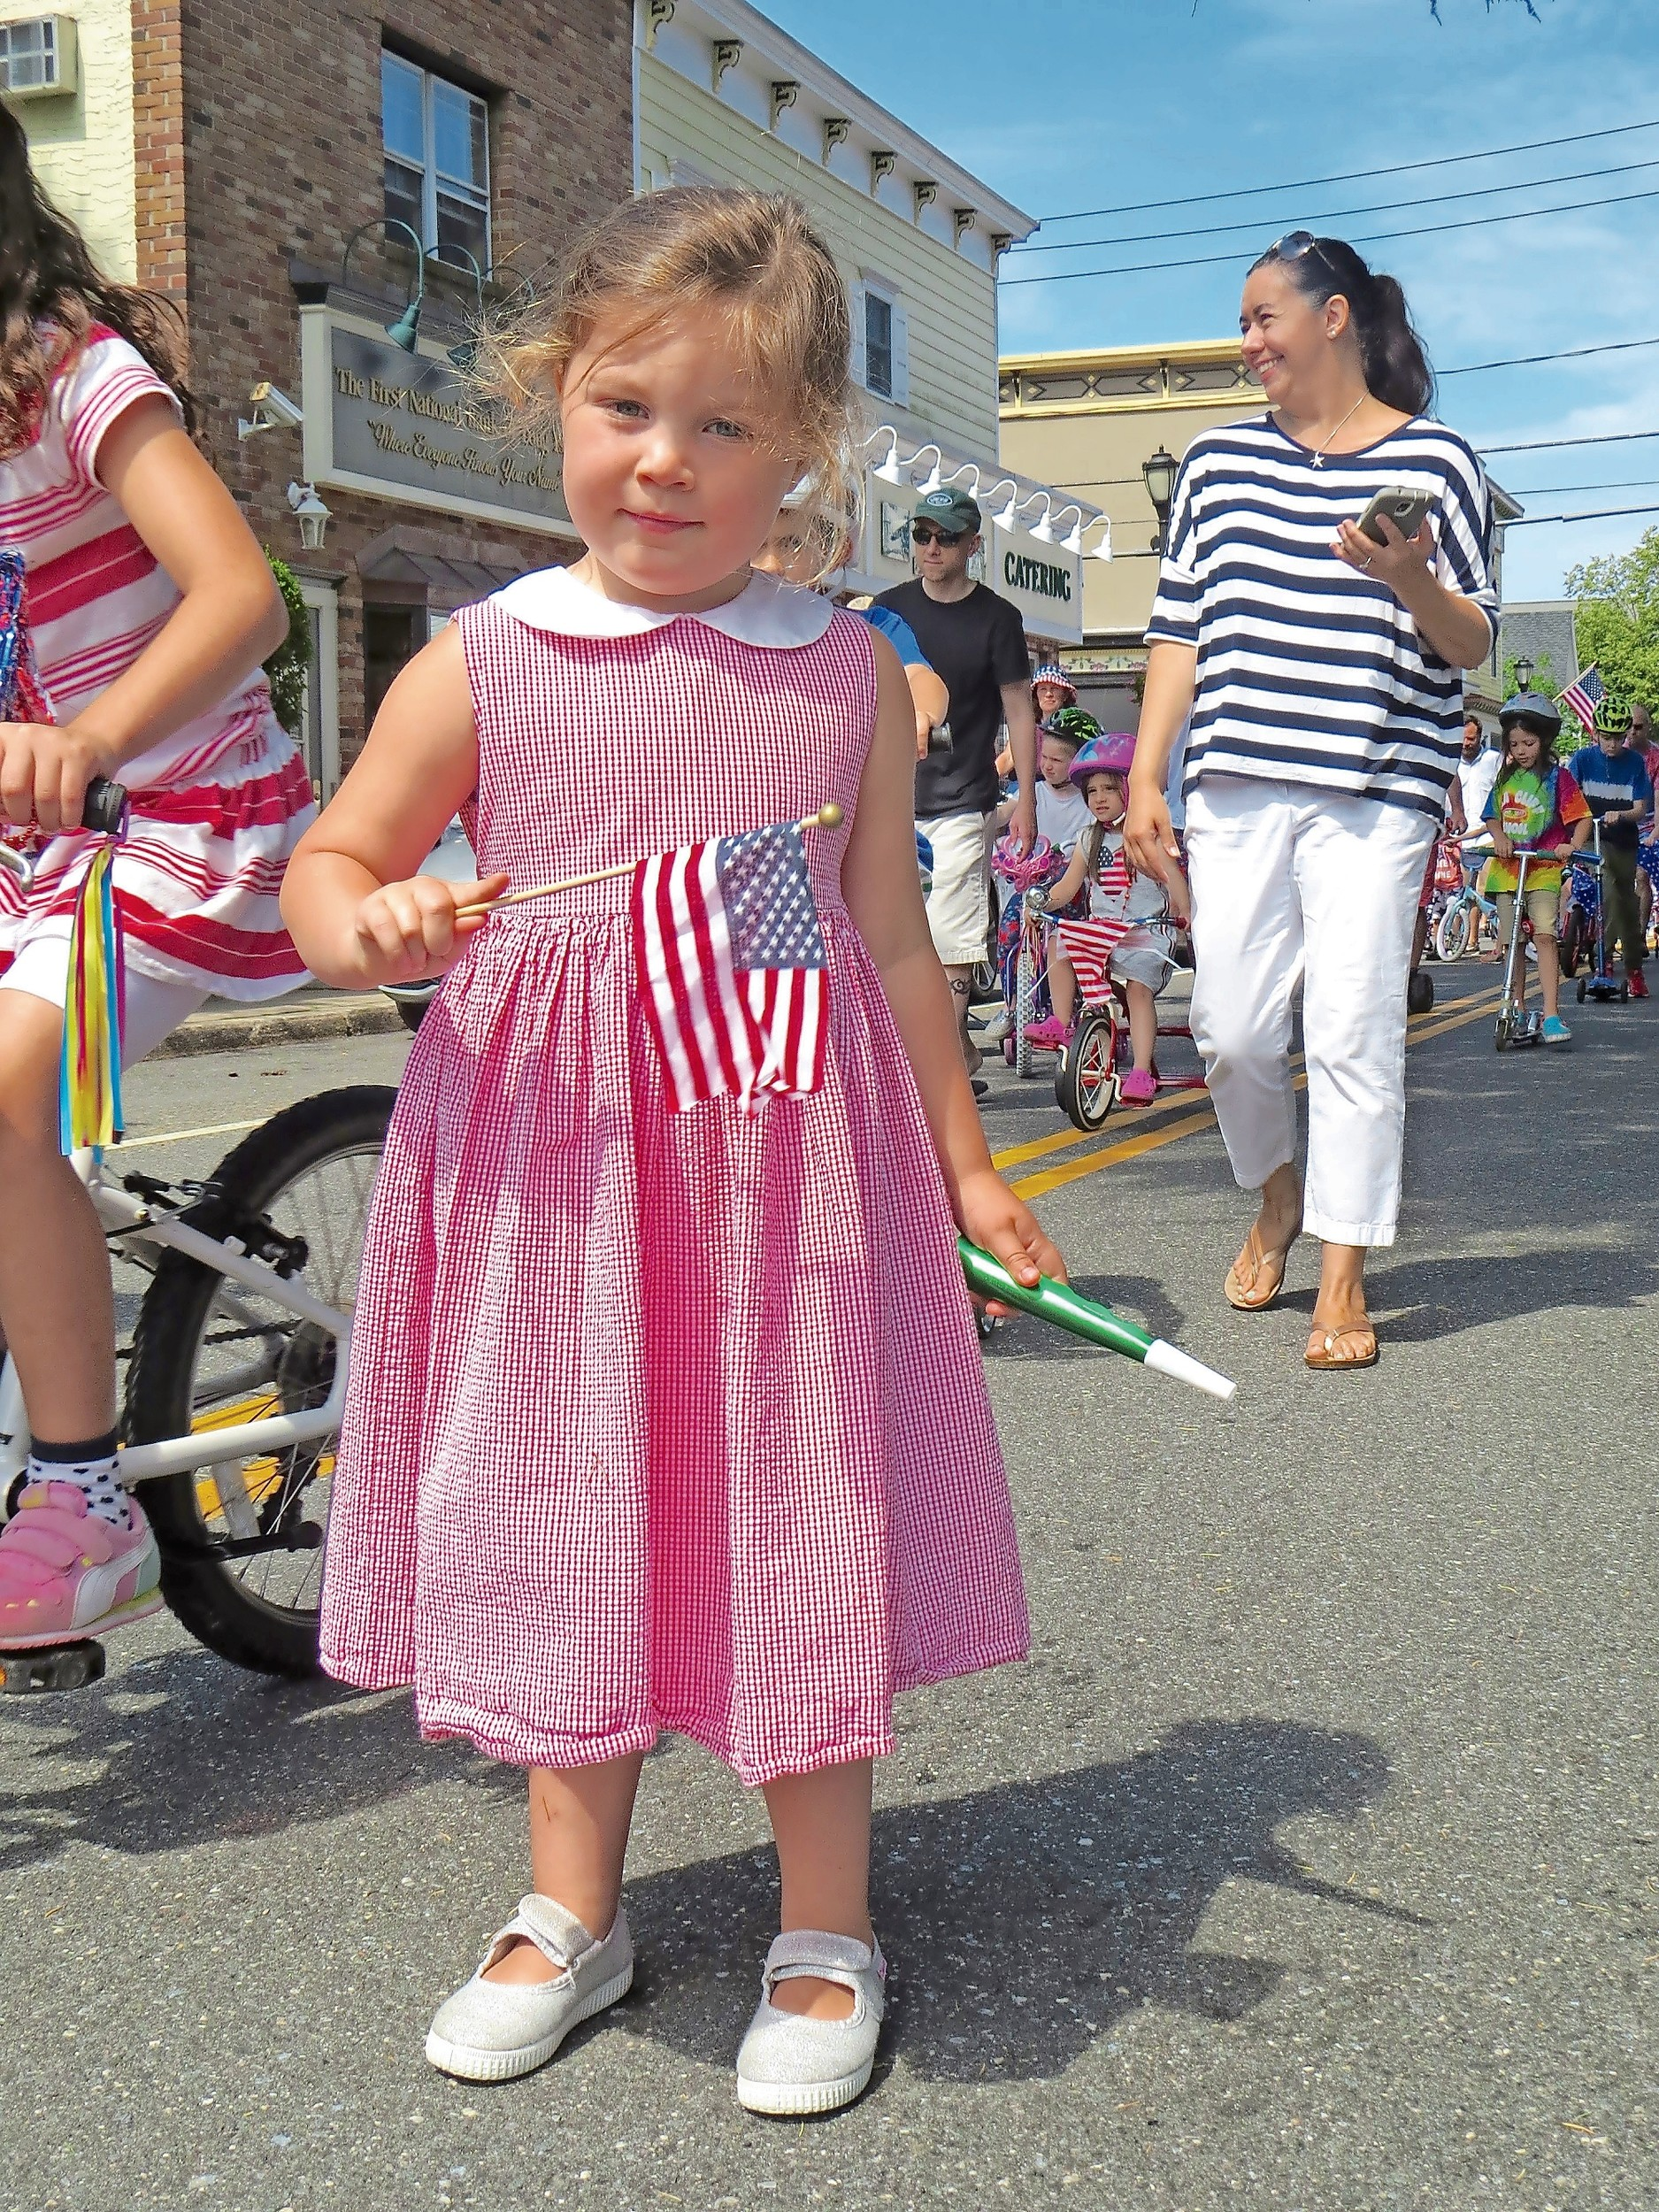 Ellamae Grau, 3, waved her flag as she marched in the parade.